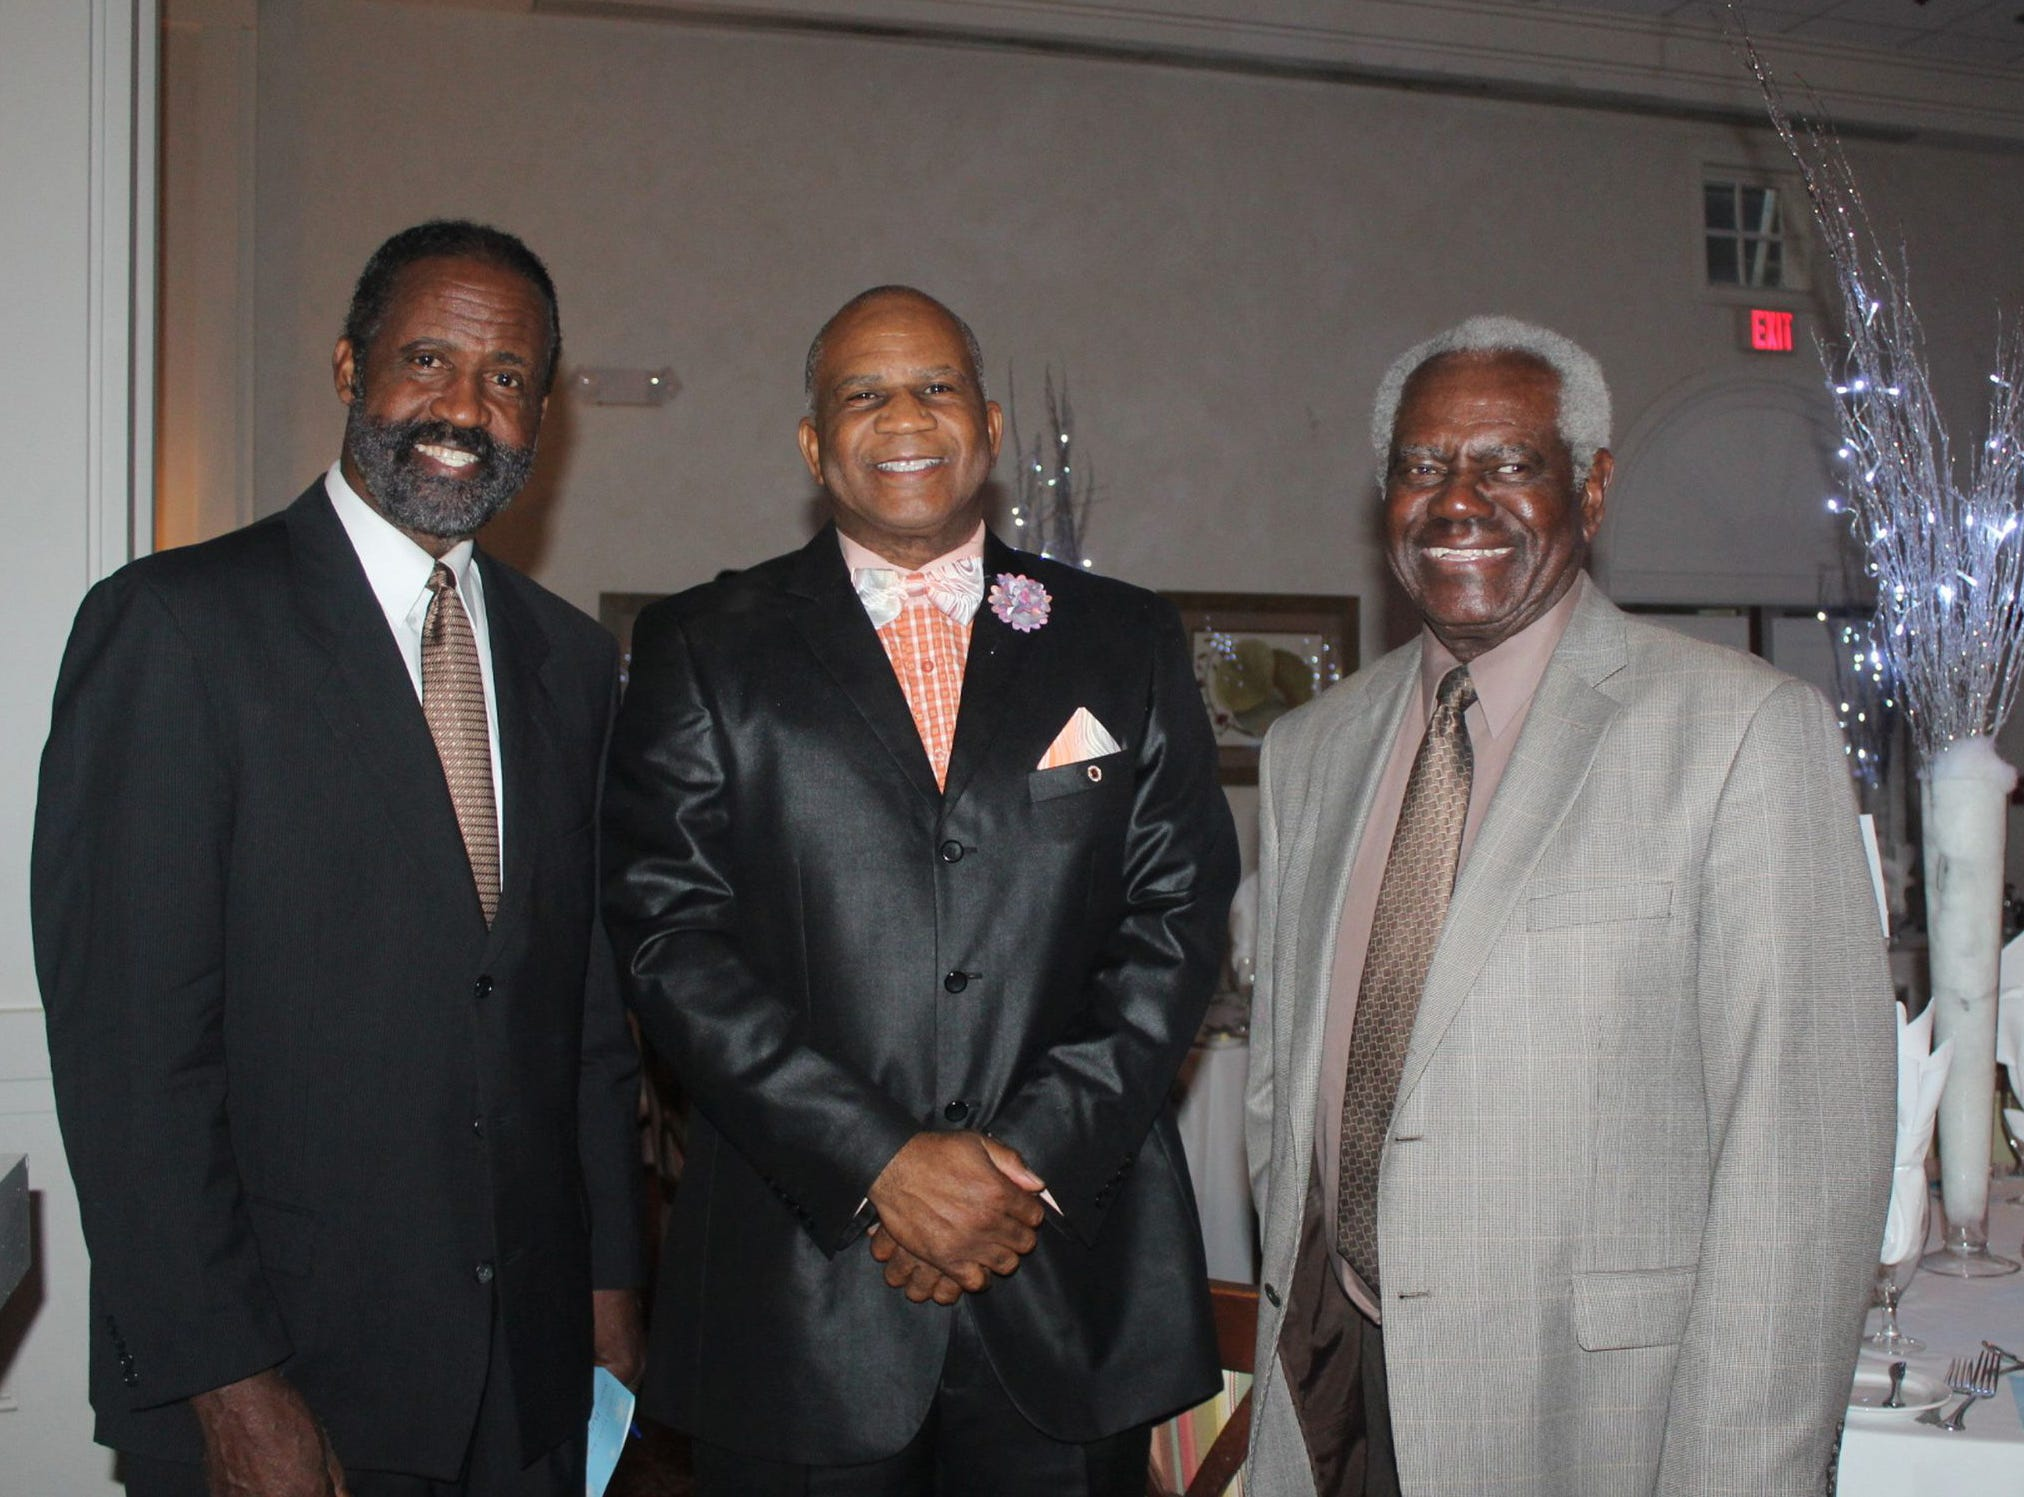 Gifford Youth Achievement Center Director of Public Relations and Facilities Operations Freddie Woolfork, left, Vernon Reason and Dr. Eddie Hudson at the  Snow Ball on Jan. 26.